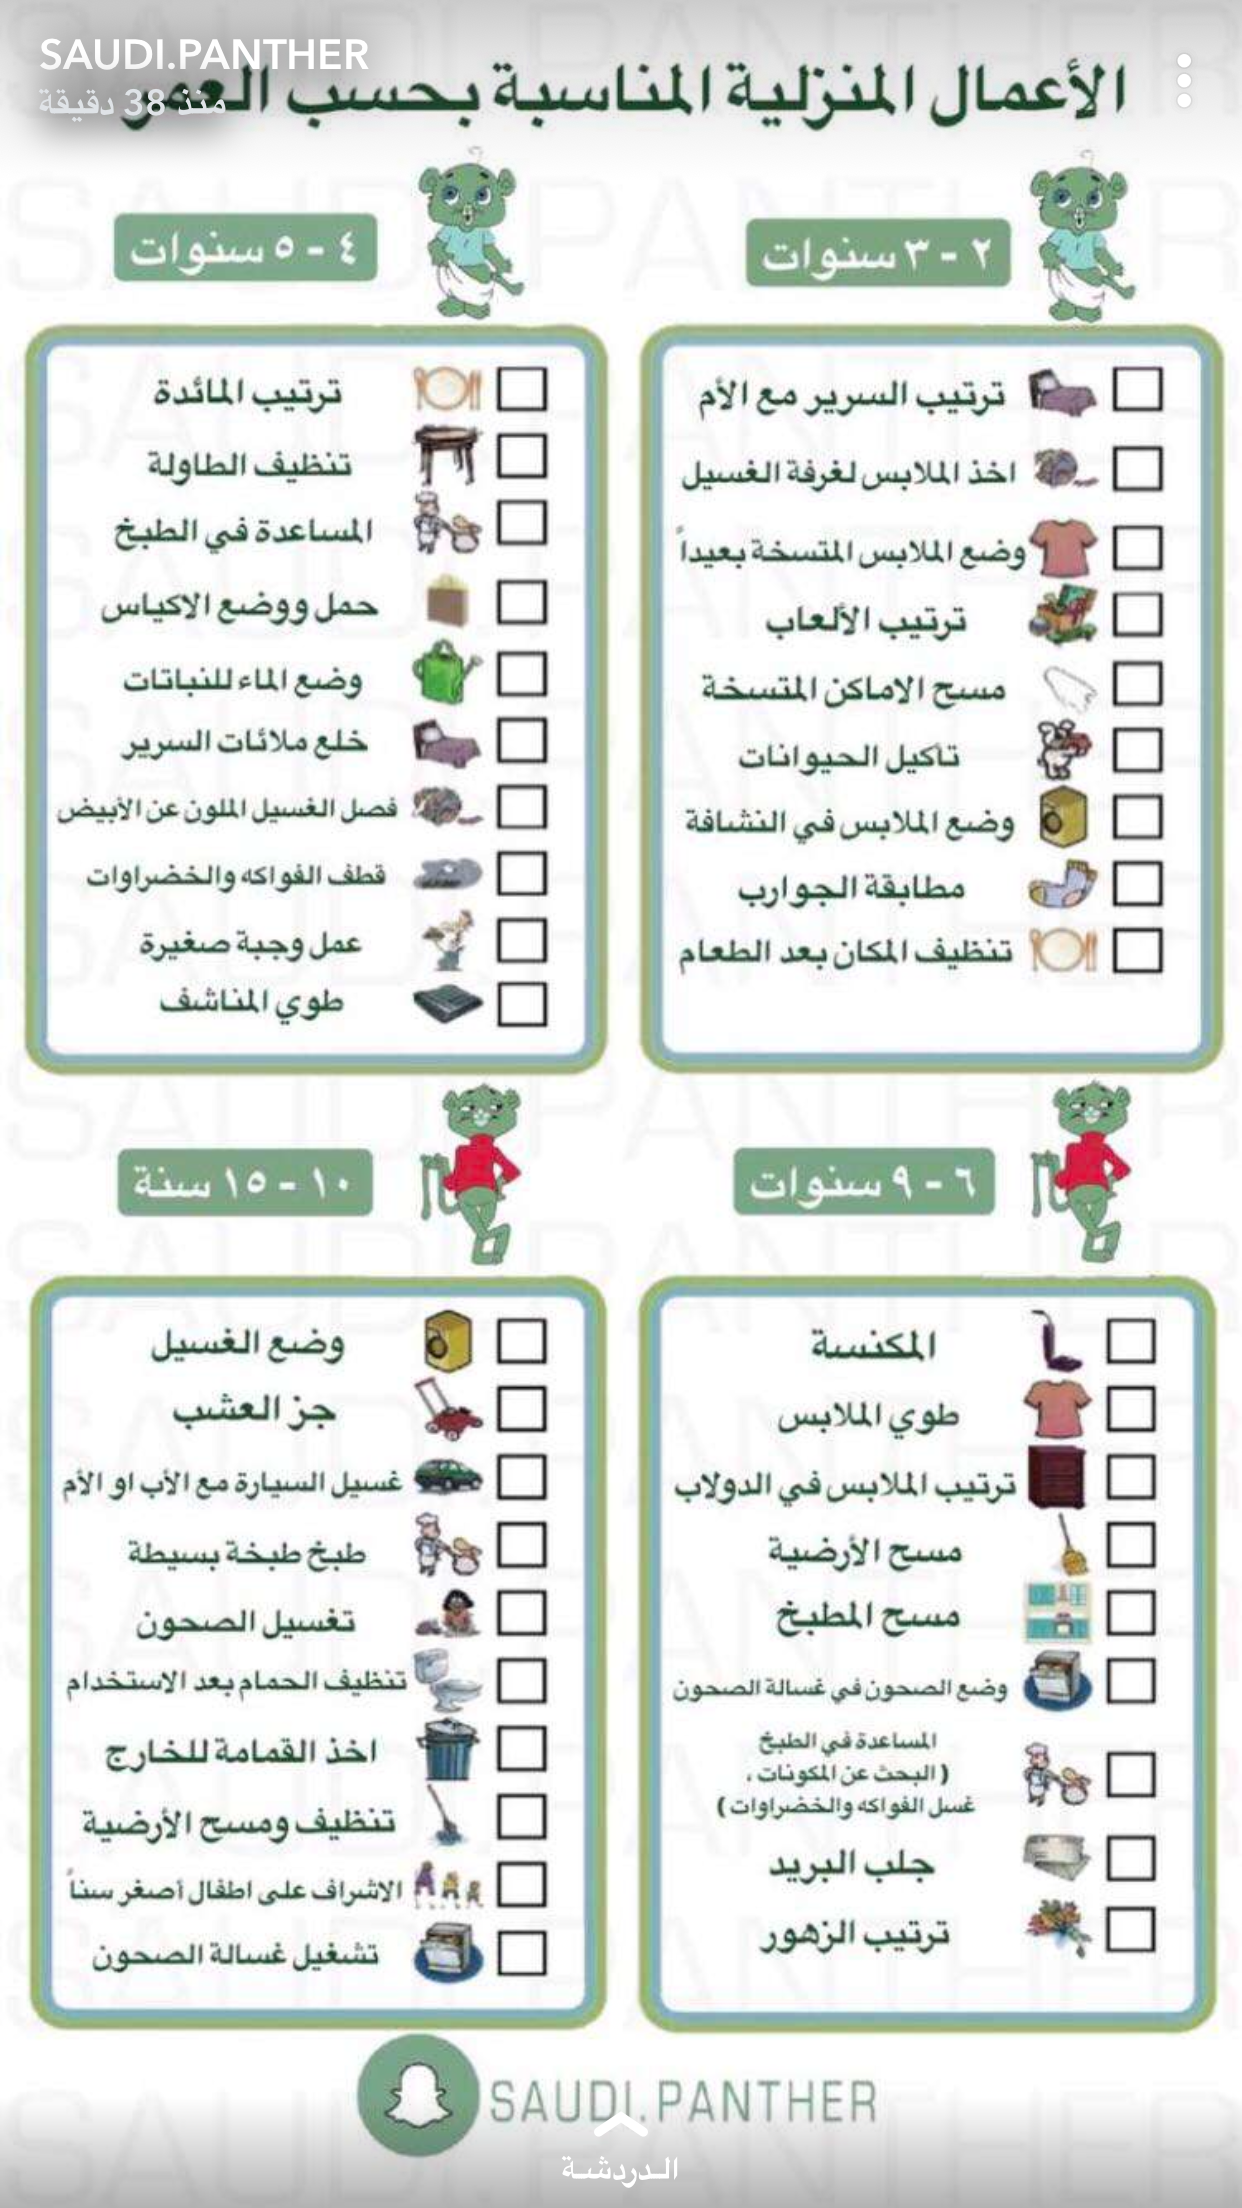 Pin By Abeer Saleh On افكار ومعلومات مفيدة ومتنوعة Baby Education Kids Planner Kids Discover